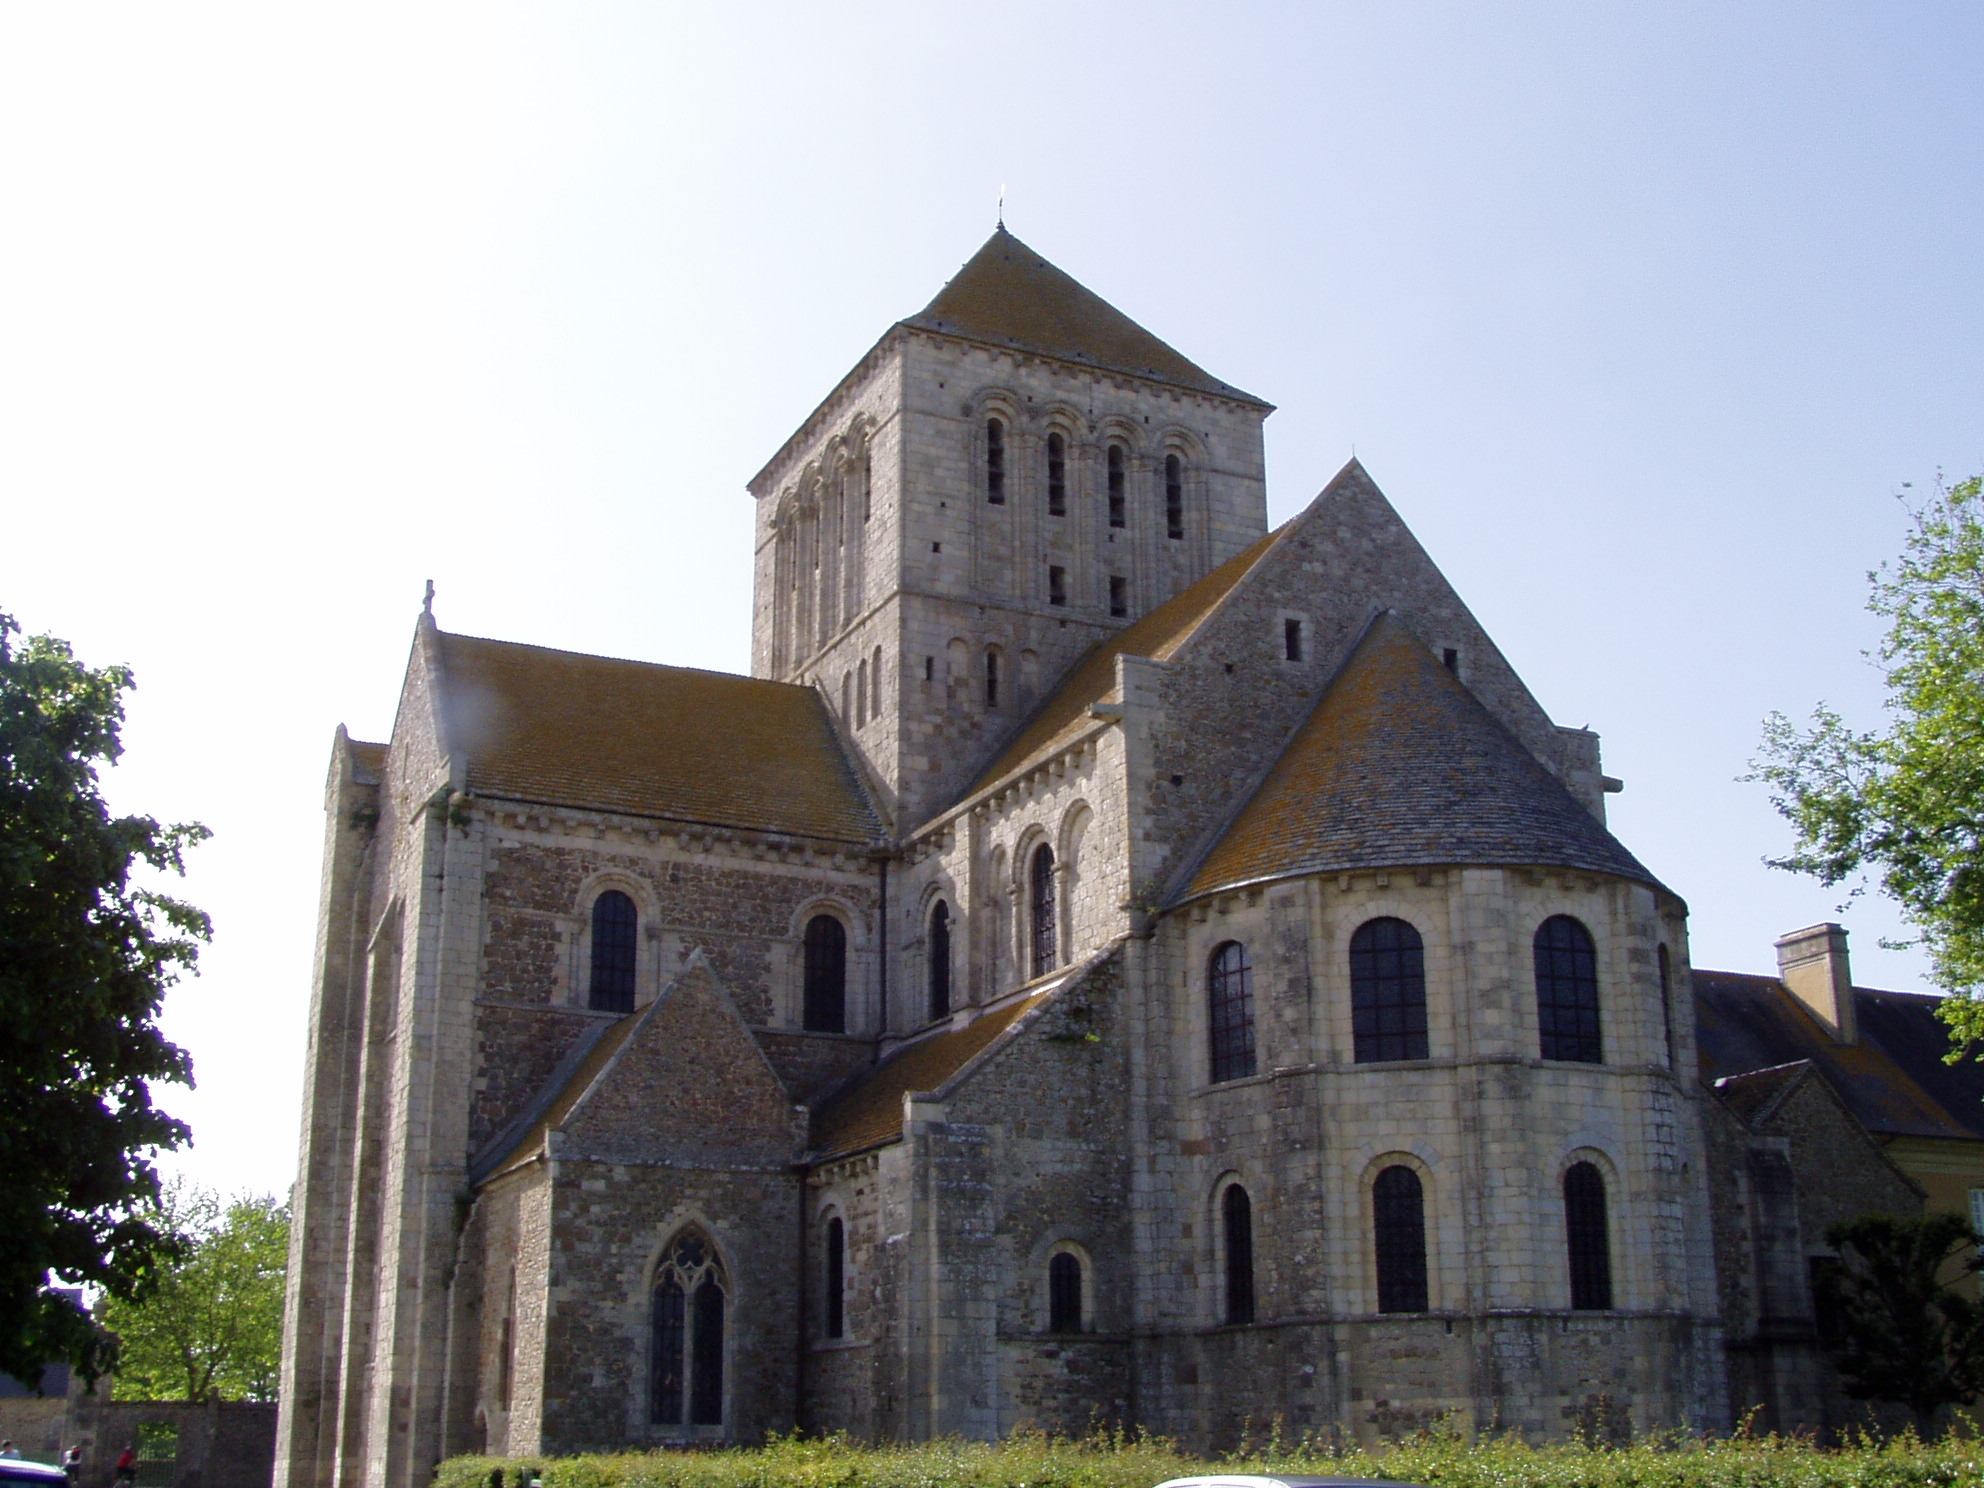 abbatiale de lessay Abbaye sainte trinité de lessay the abbey of lessay was founded in 1056 and had its apogee in the 12th and 13th centuries the abbey is a romanesque building which was partially destroyed during world war 2 and identically restored afterwards.